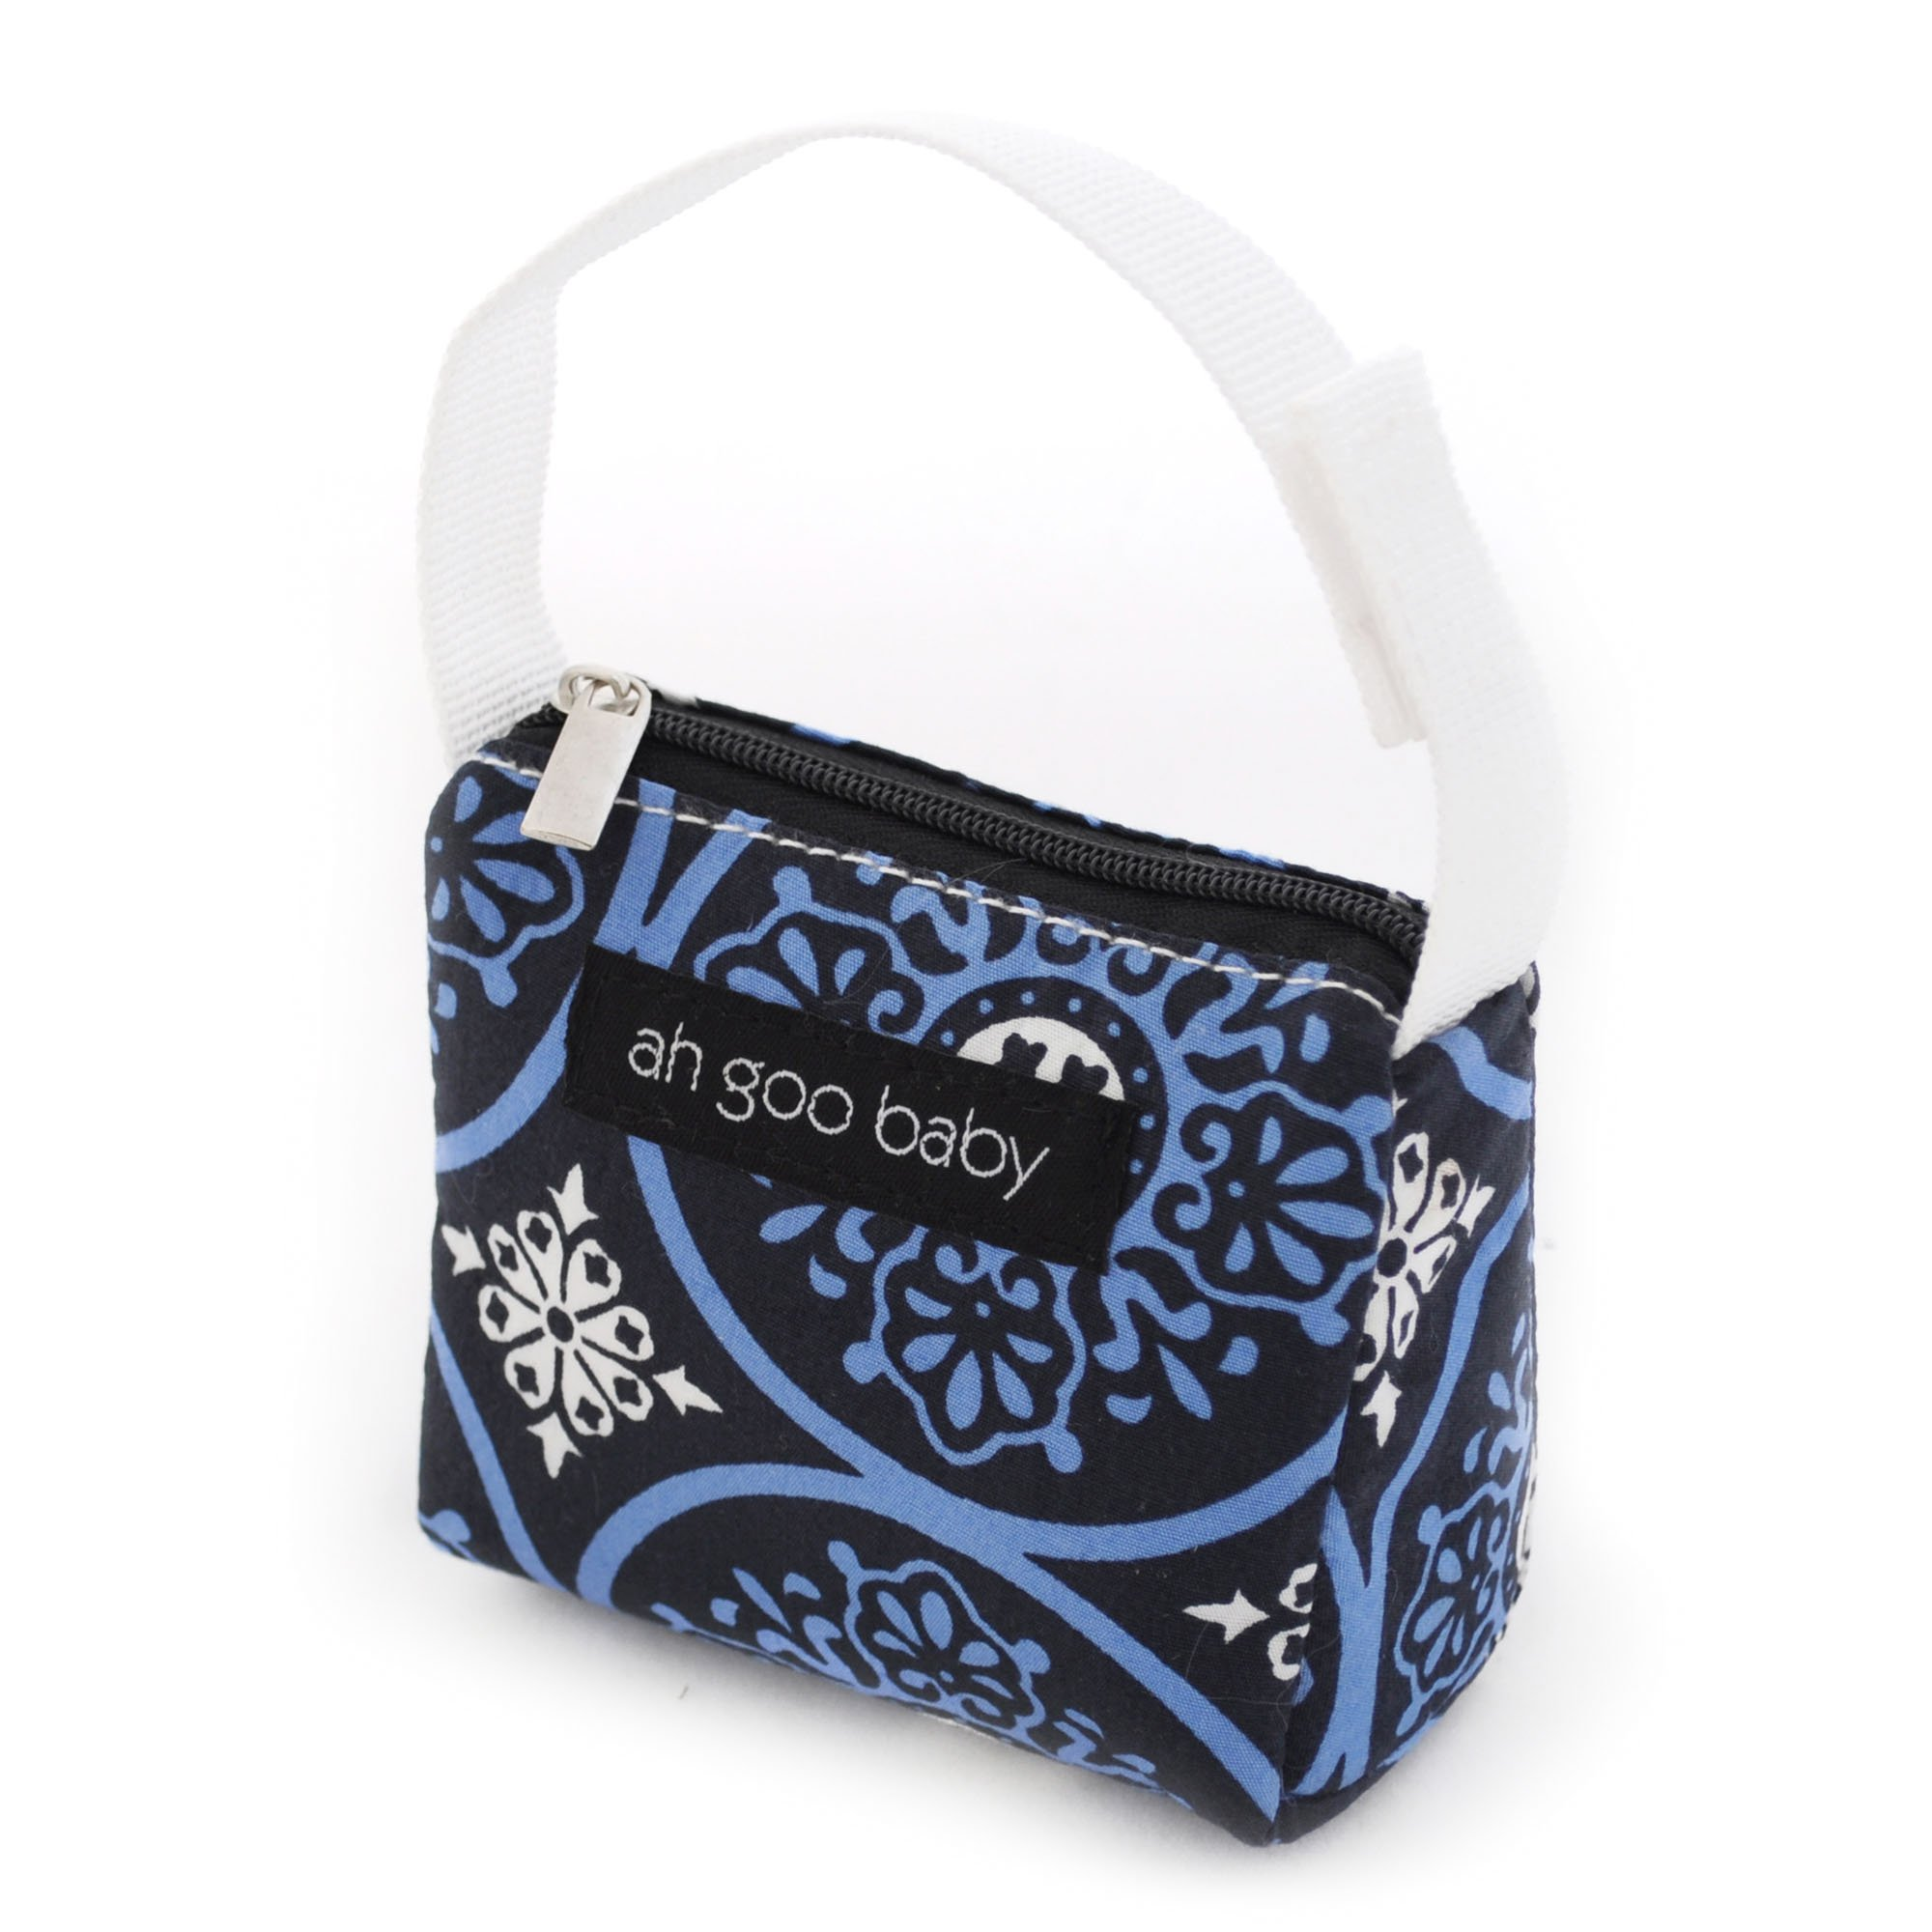 Ah Goo Baby Pacifier Holder and Tote, Blueberry Pattern